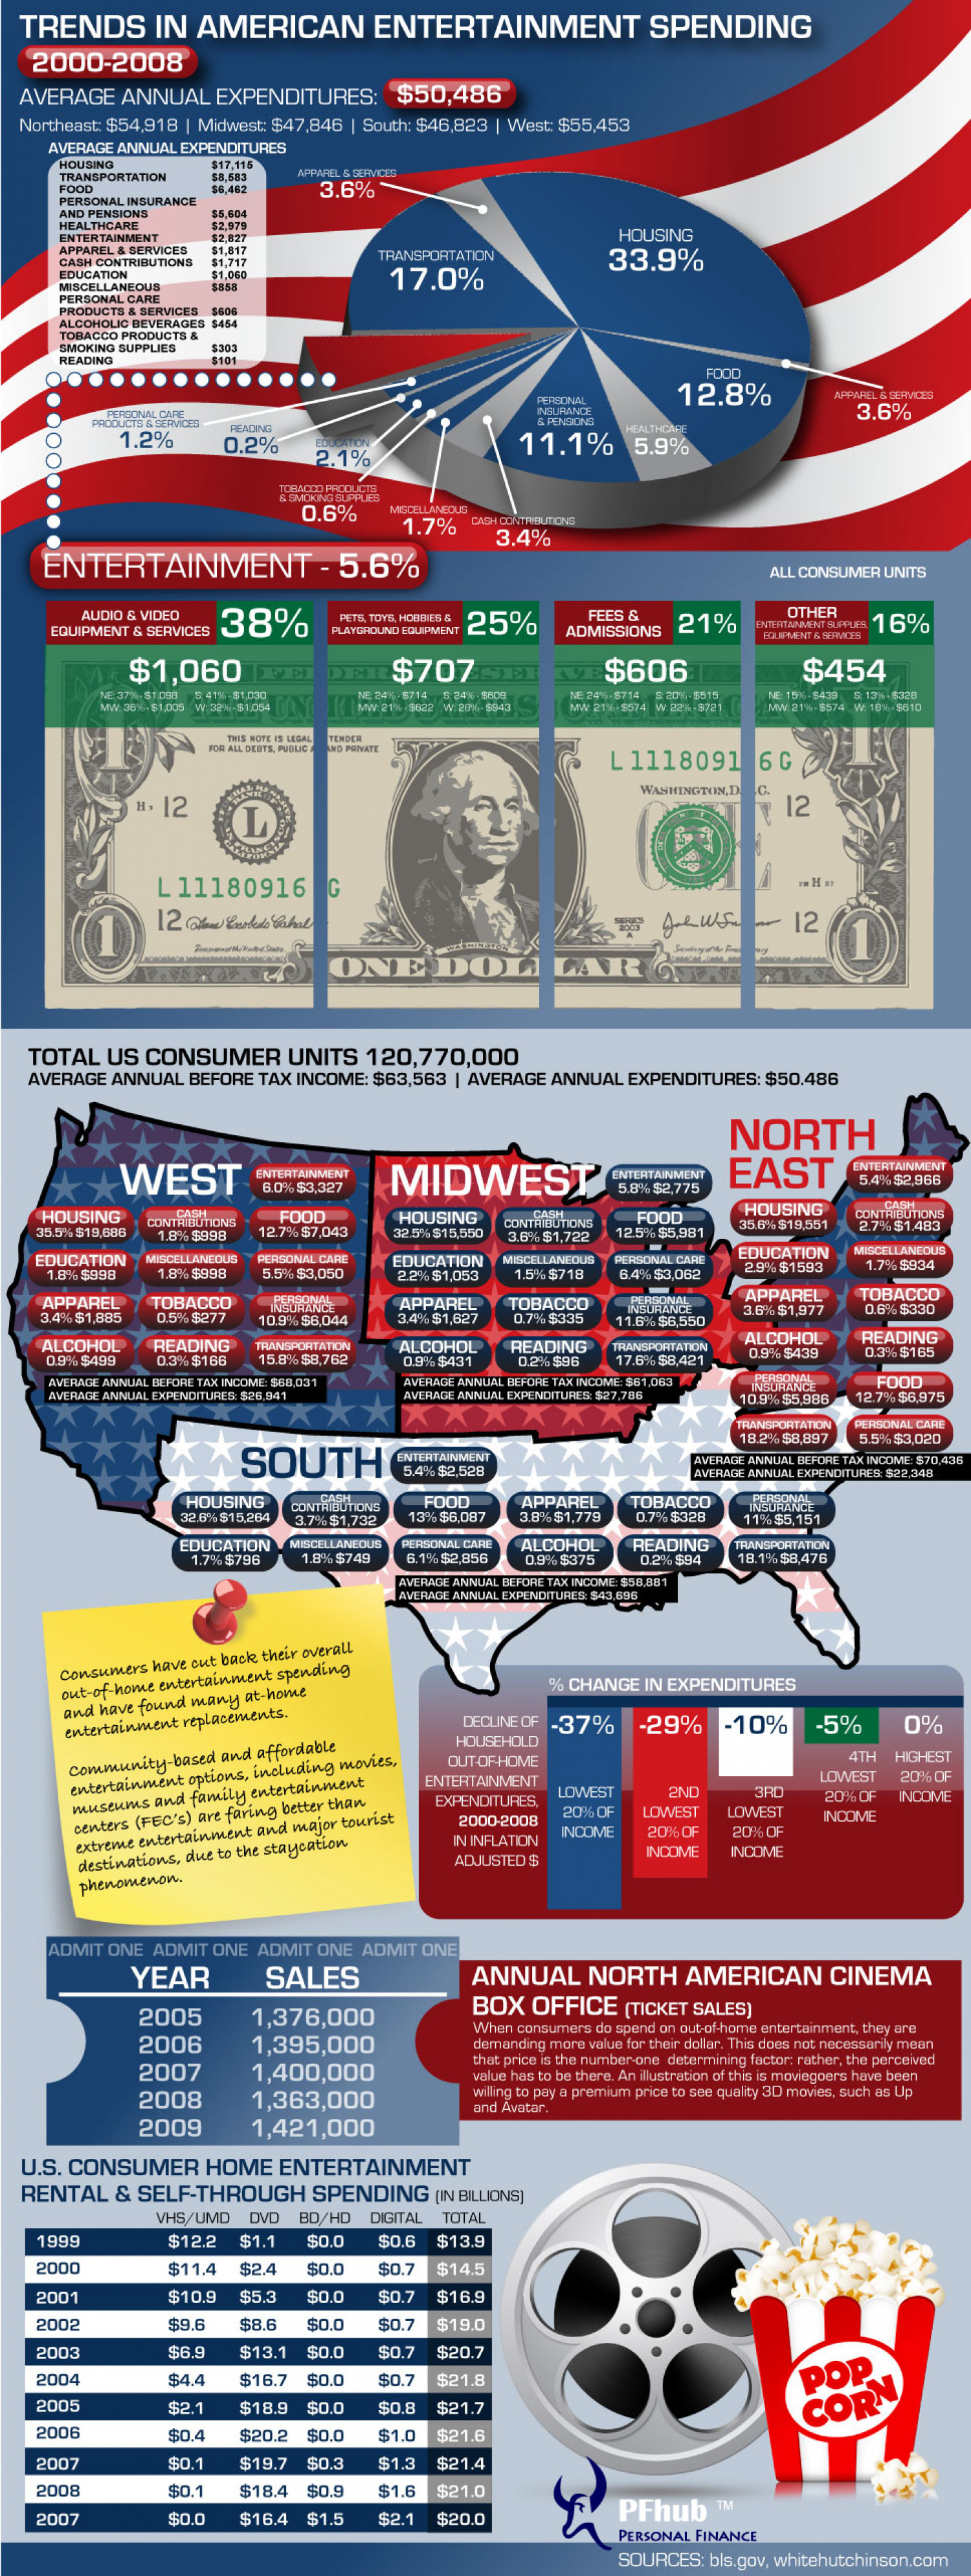 Trends in American Entertainment Spending Infographic